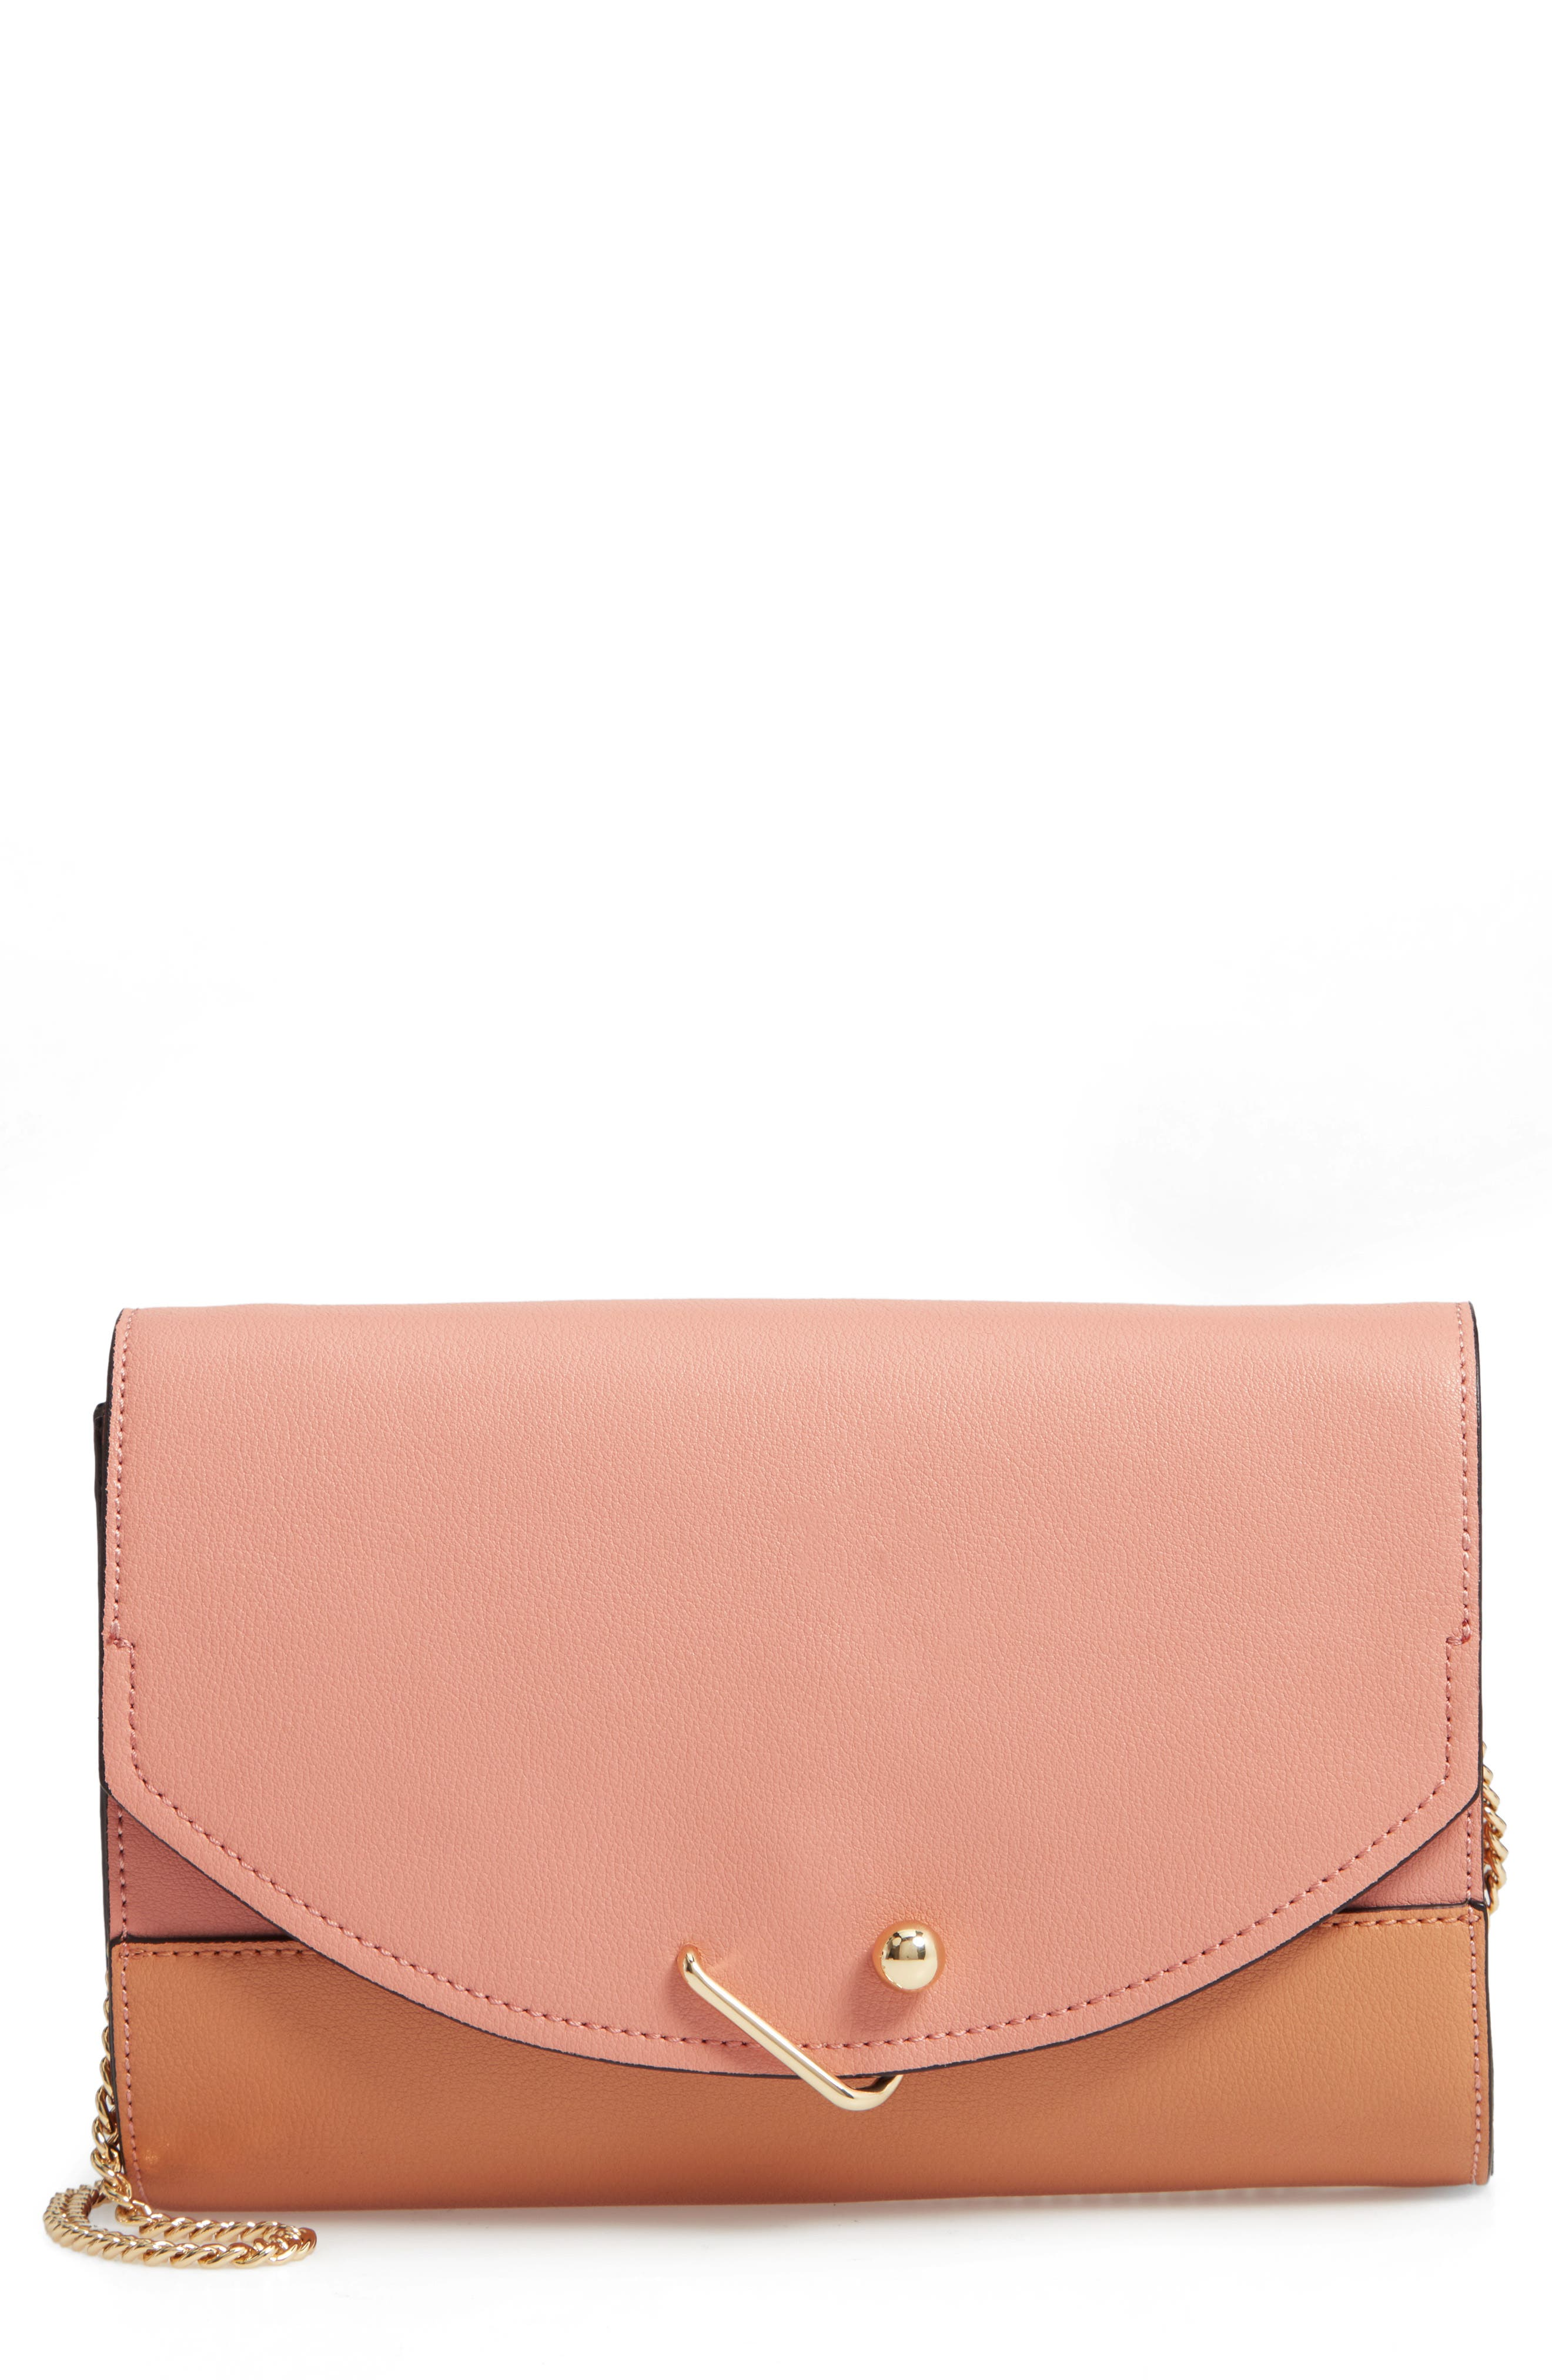 DANIELLE NICOLE Easton Colorblock Leather Clutch - Pink in Blush Combo